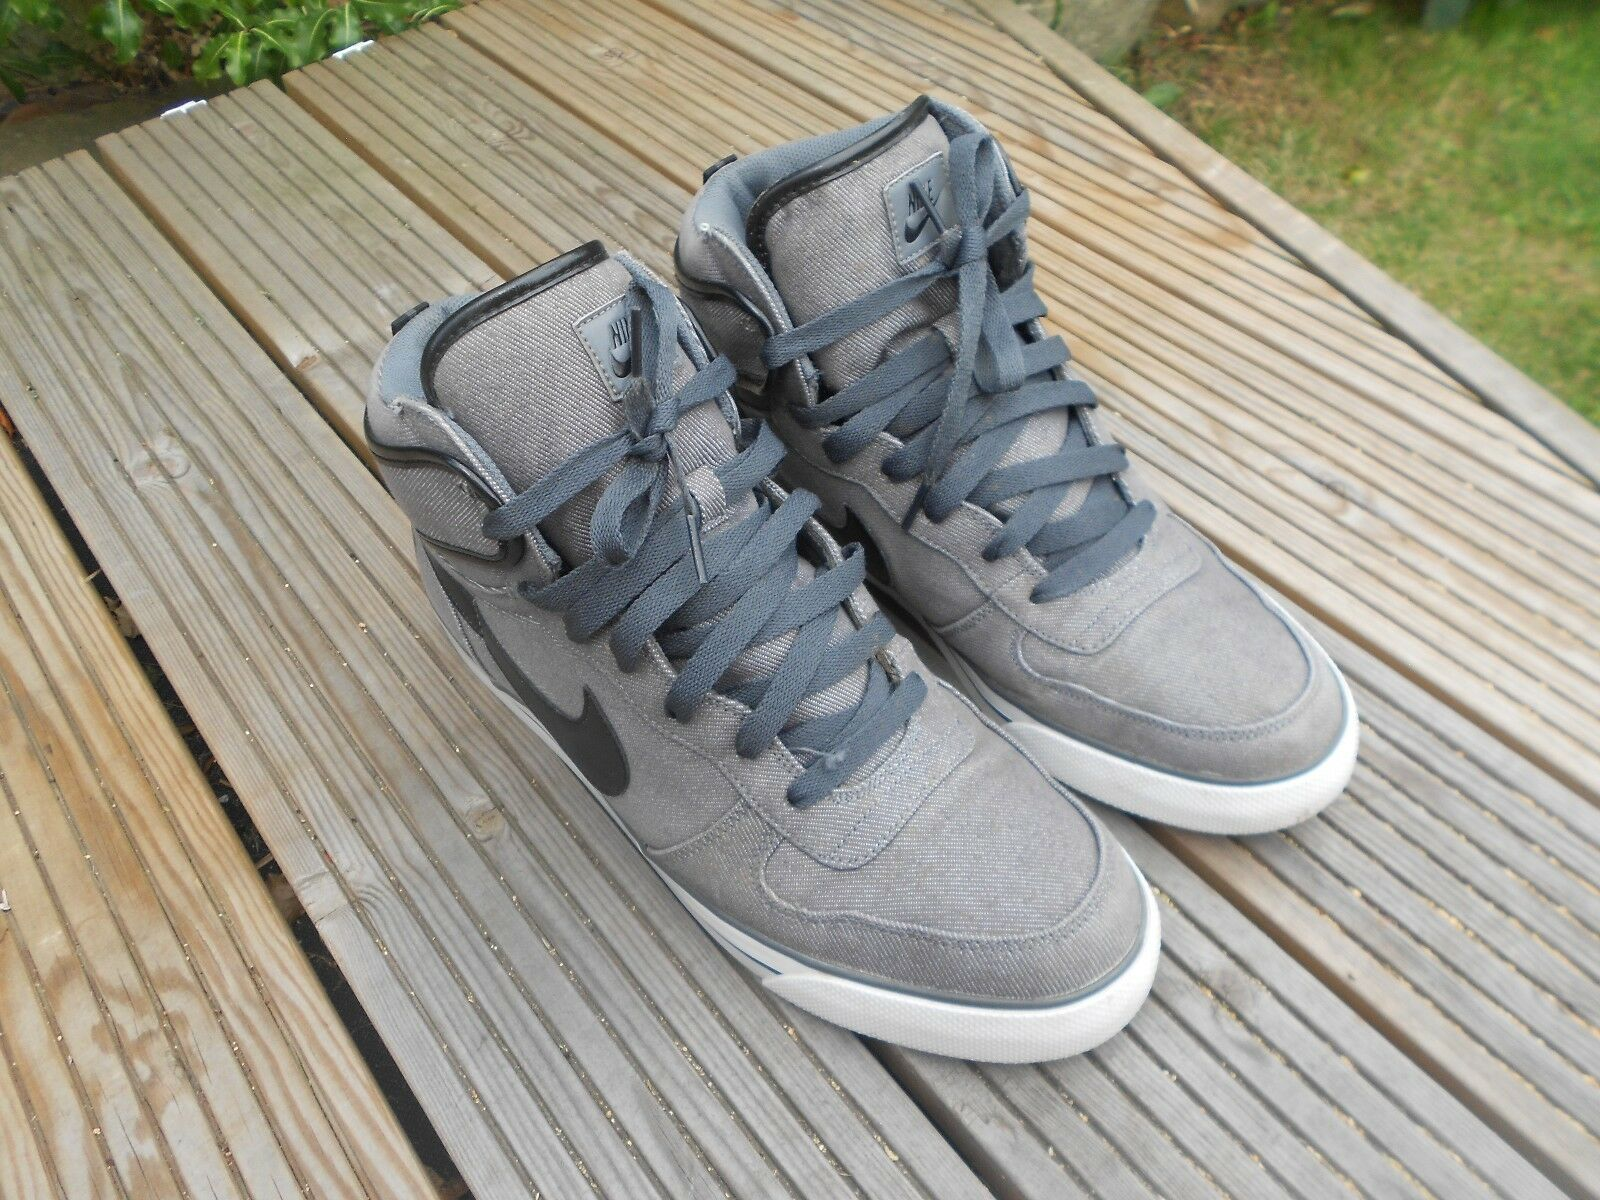 MENS BIG NIKE HIGH AC TEXT TRAINERS UK SIZE 12 - GREY - IN A GOODISH CONDITION